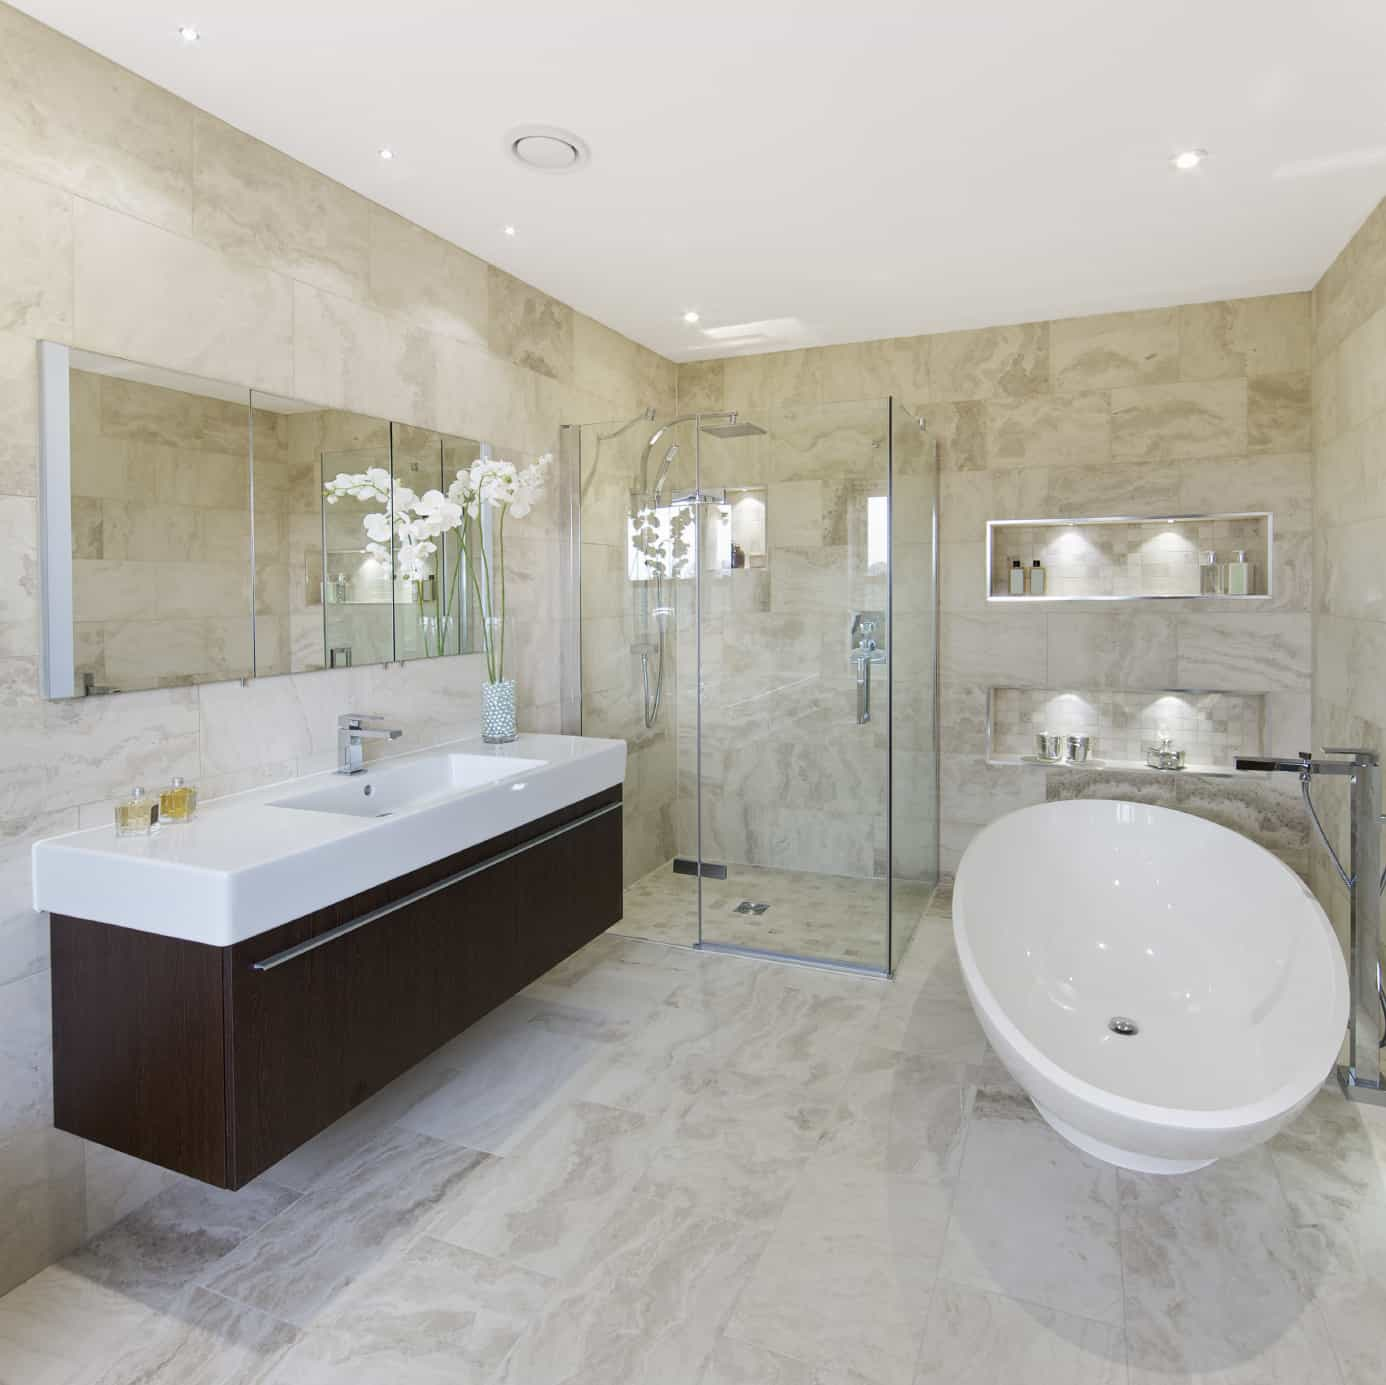 A primary bathroom surrounded by stylish tiles walls and flooring. It also offers a freestanding tub and a walk-in shower, along with a floating vanity sink.